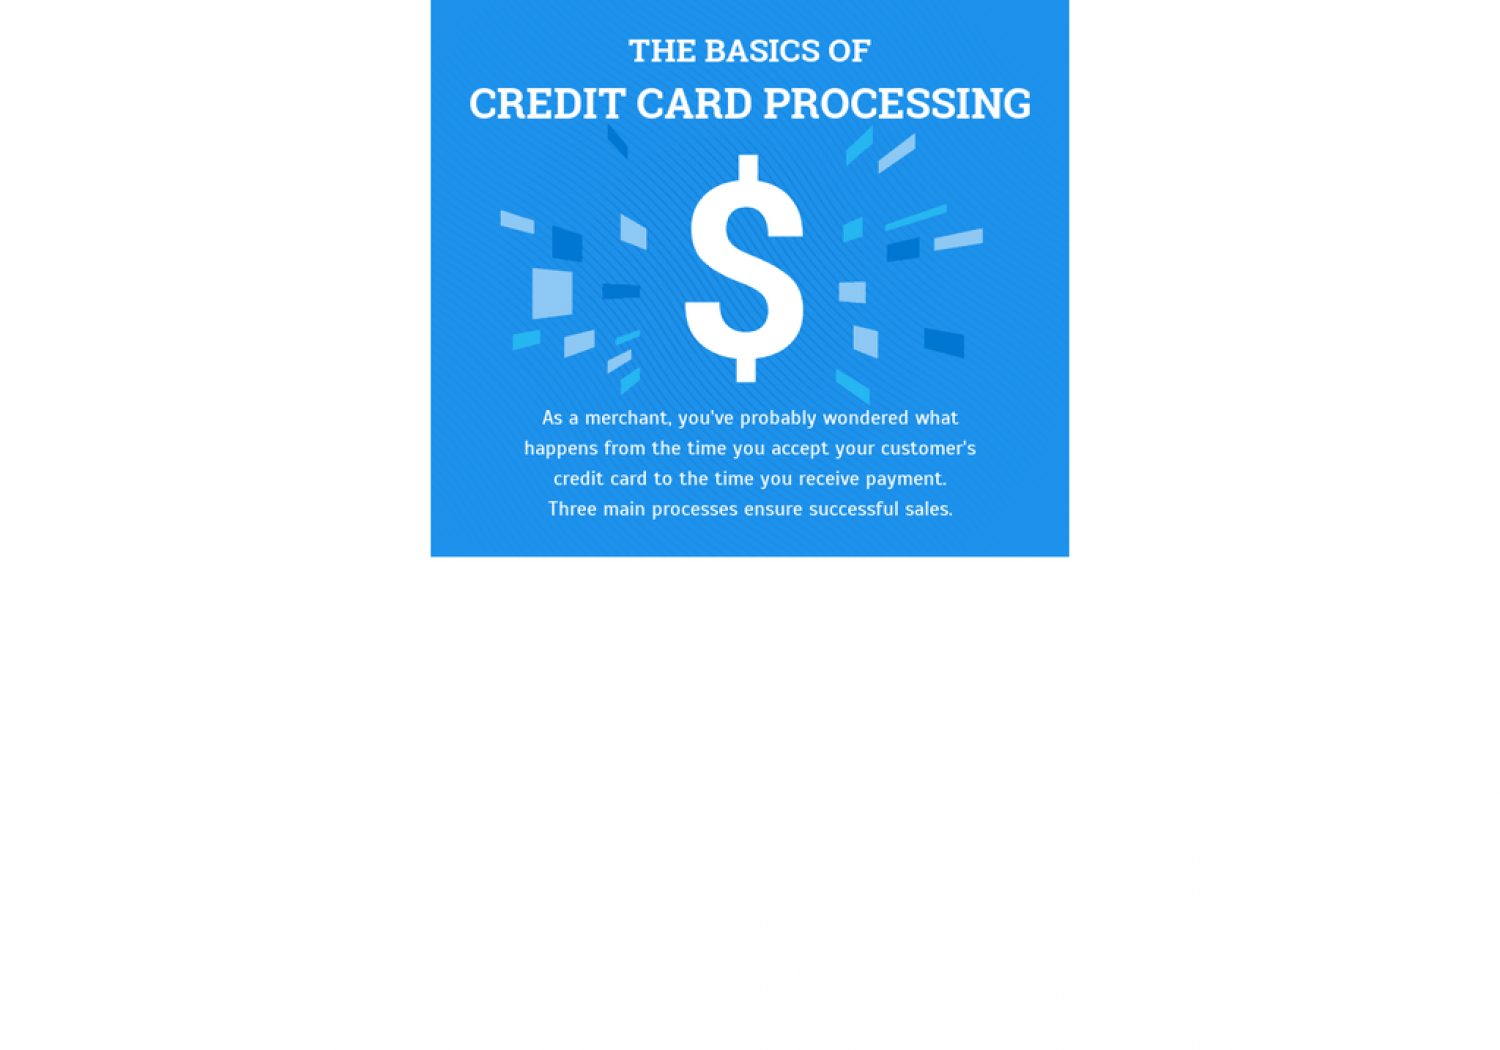 The Basics of Credit Card Processing Infographic